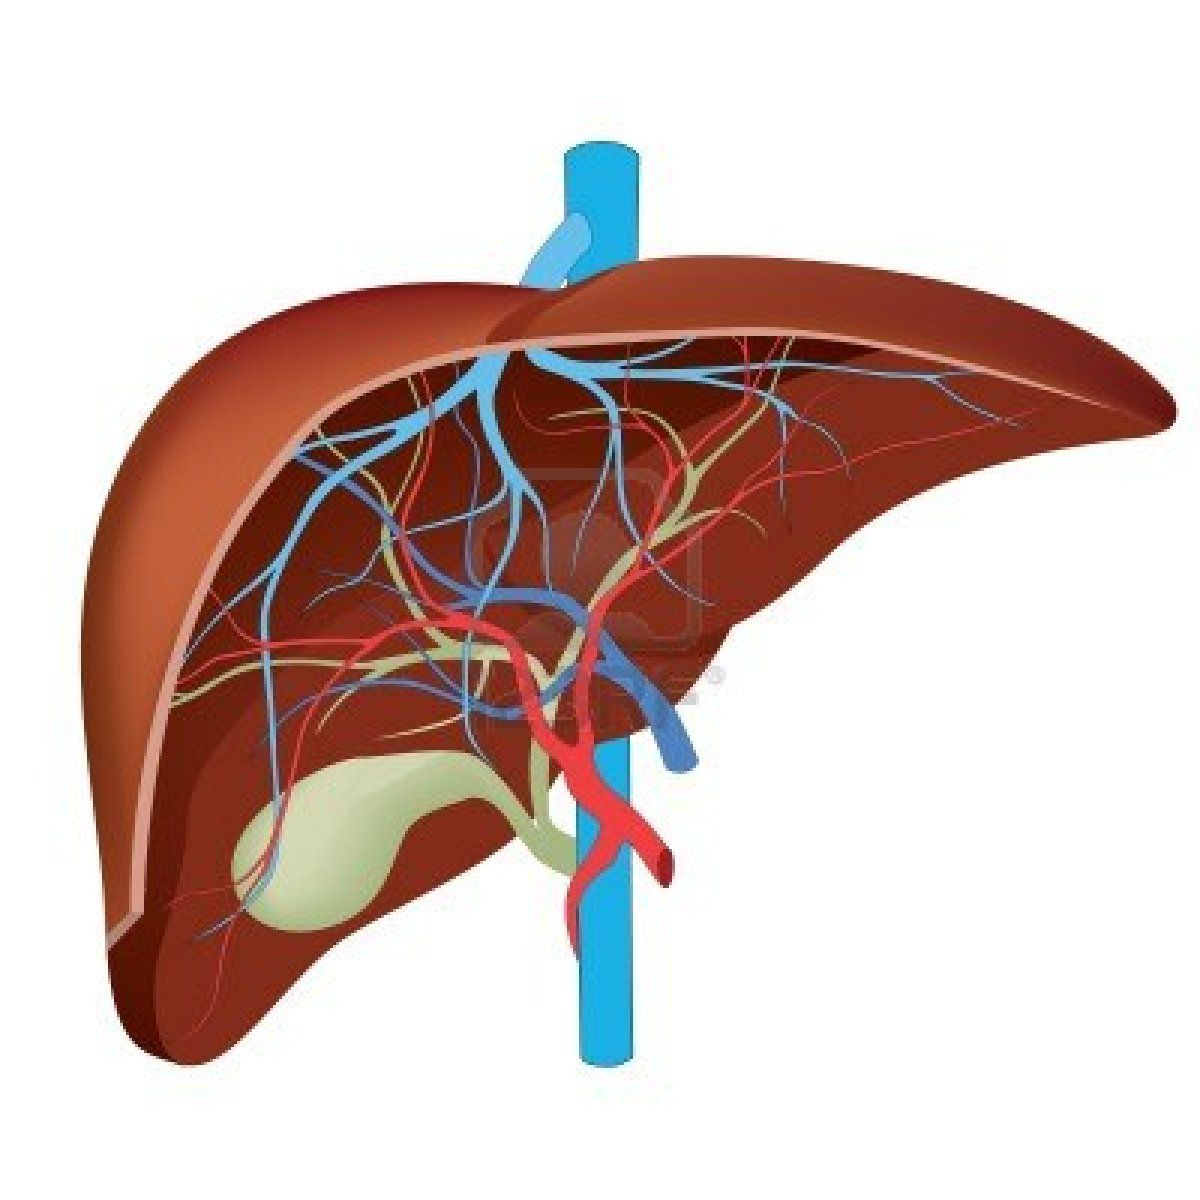 hepatic images liver diagram for assignment human anatomy [ 1200 x 1200 Pixel ]